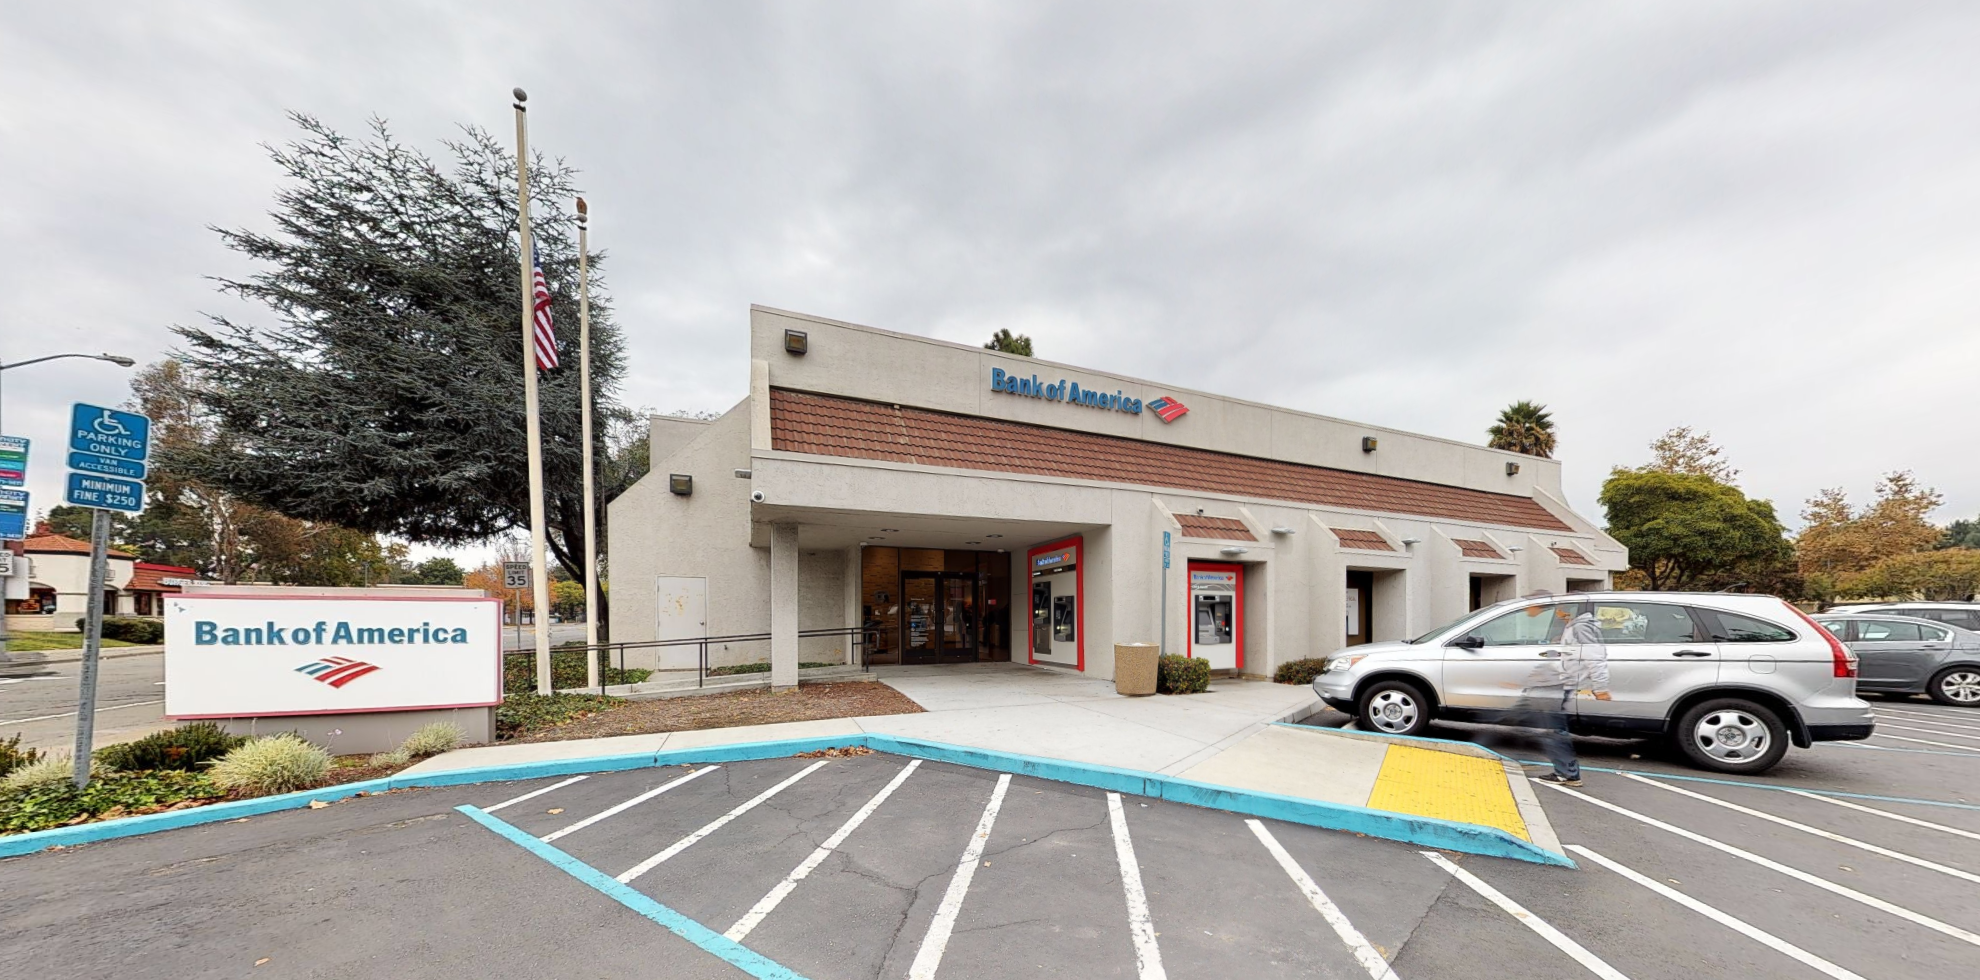 Bank of America financial center with drive-thru ATM   1900 Decoto Rd, Union City, CA 94587